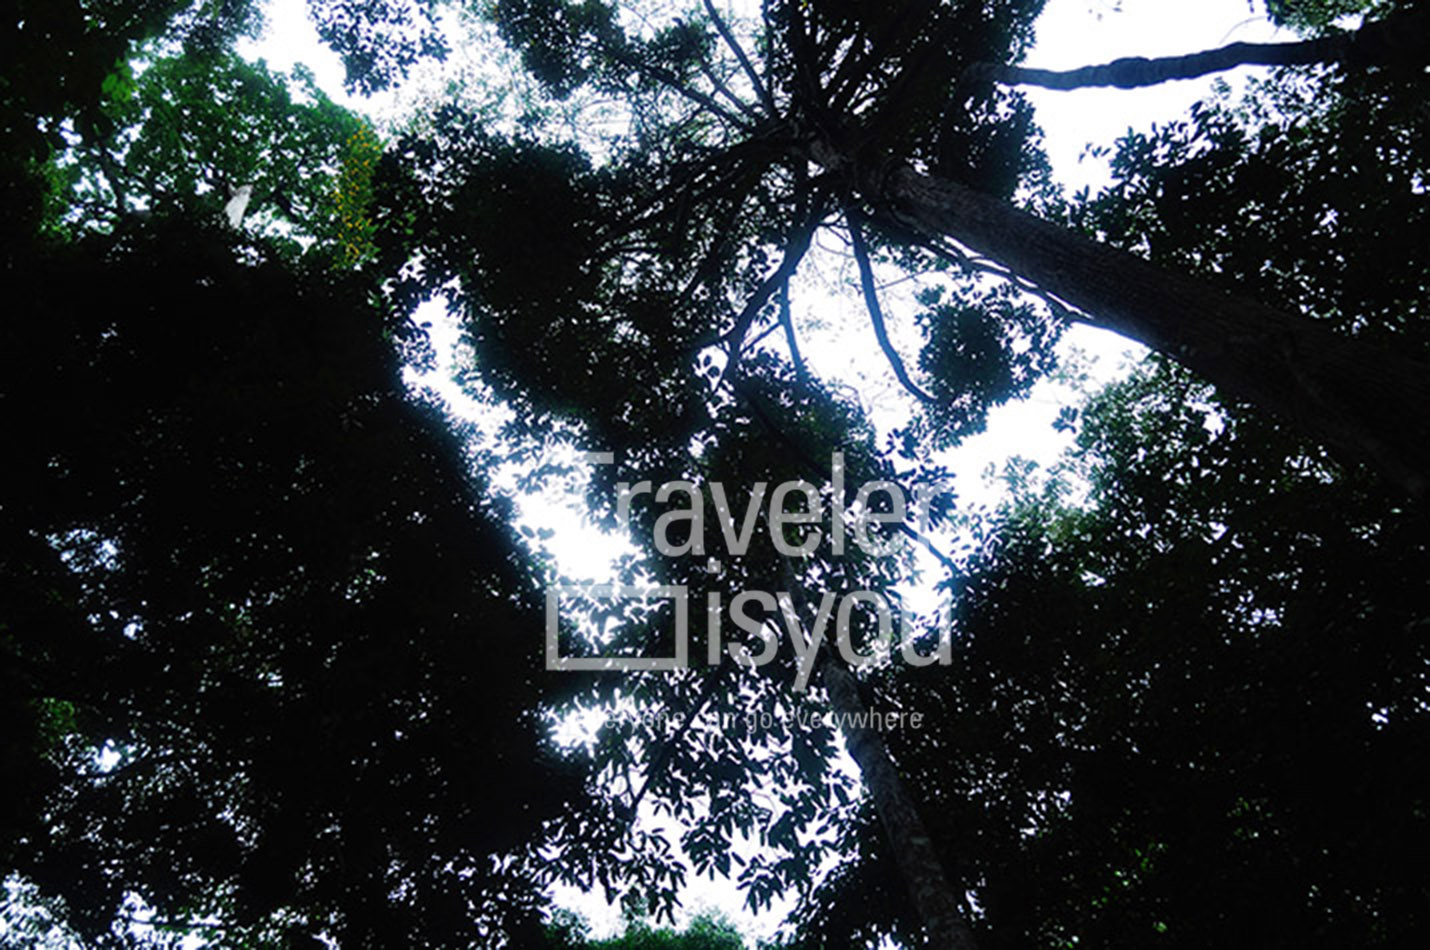 It is the Ministry's forest conservation which is managed by the Office of BKSDA Dumai. This forest is located in the middle of Dumai city, exactly in the village of Bukit Jin and Bukit Timah, west Dumai  subdistrict.